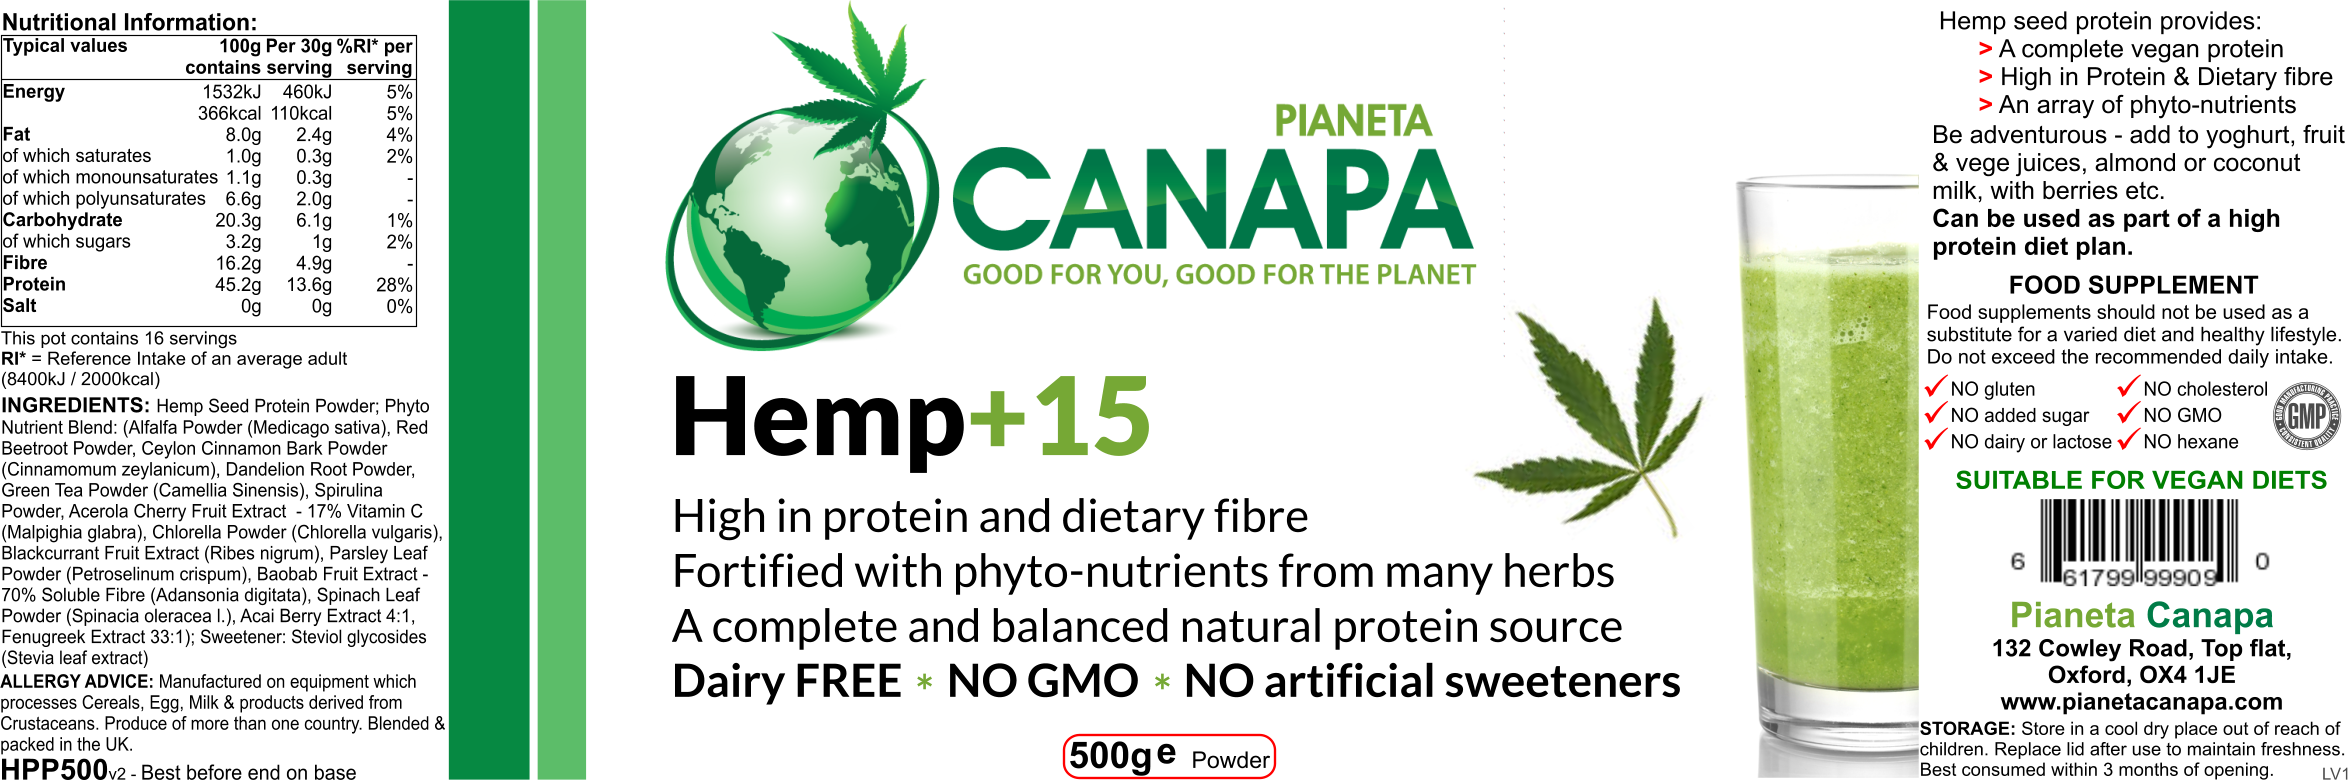 Hemp+15 protein powder label. 100% natural ingredients: hemp, herbs. Easily digestible. NO gluten, dairy, lactose, GMO, hexane, pesticides, herbicides, colours, additives, preservatives. Vegan